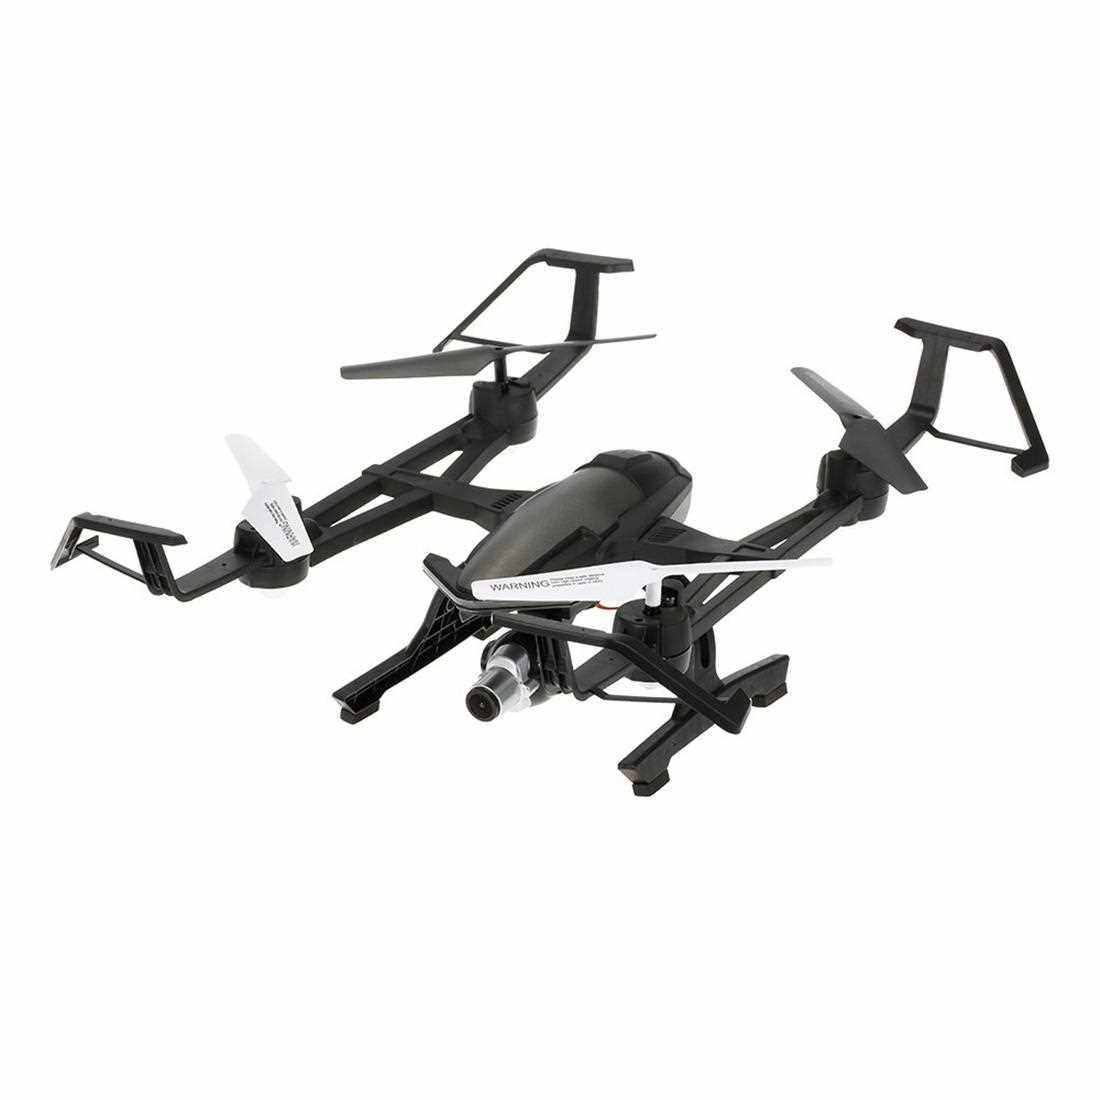 Best Selling 668-R8WH 2.4G 4CH 1080P Camera Wifi FPV Drone (1#)